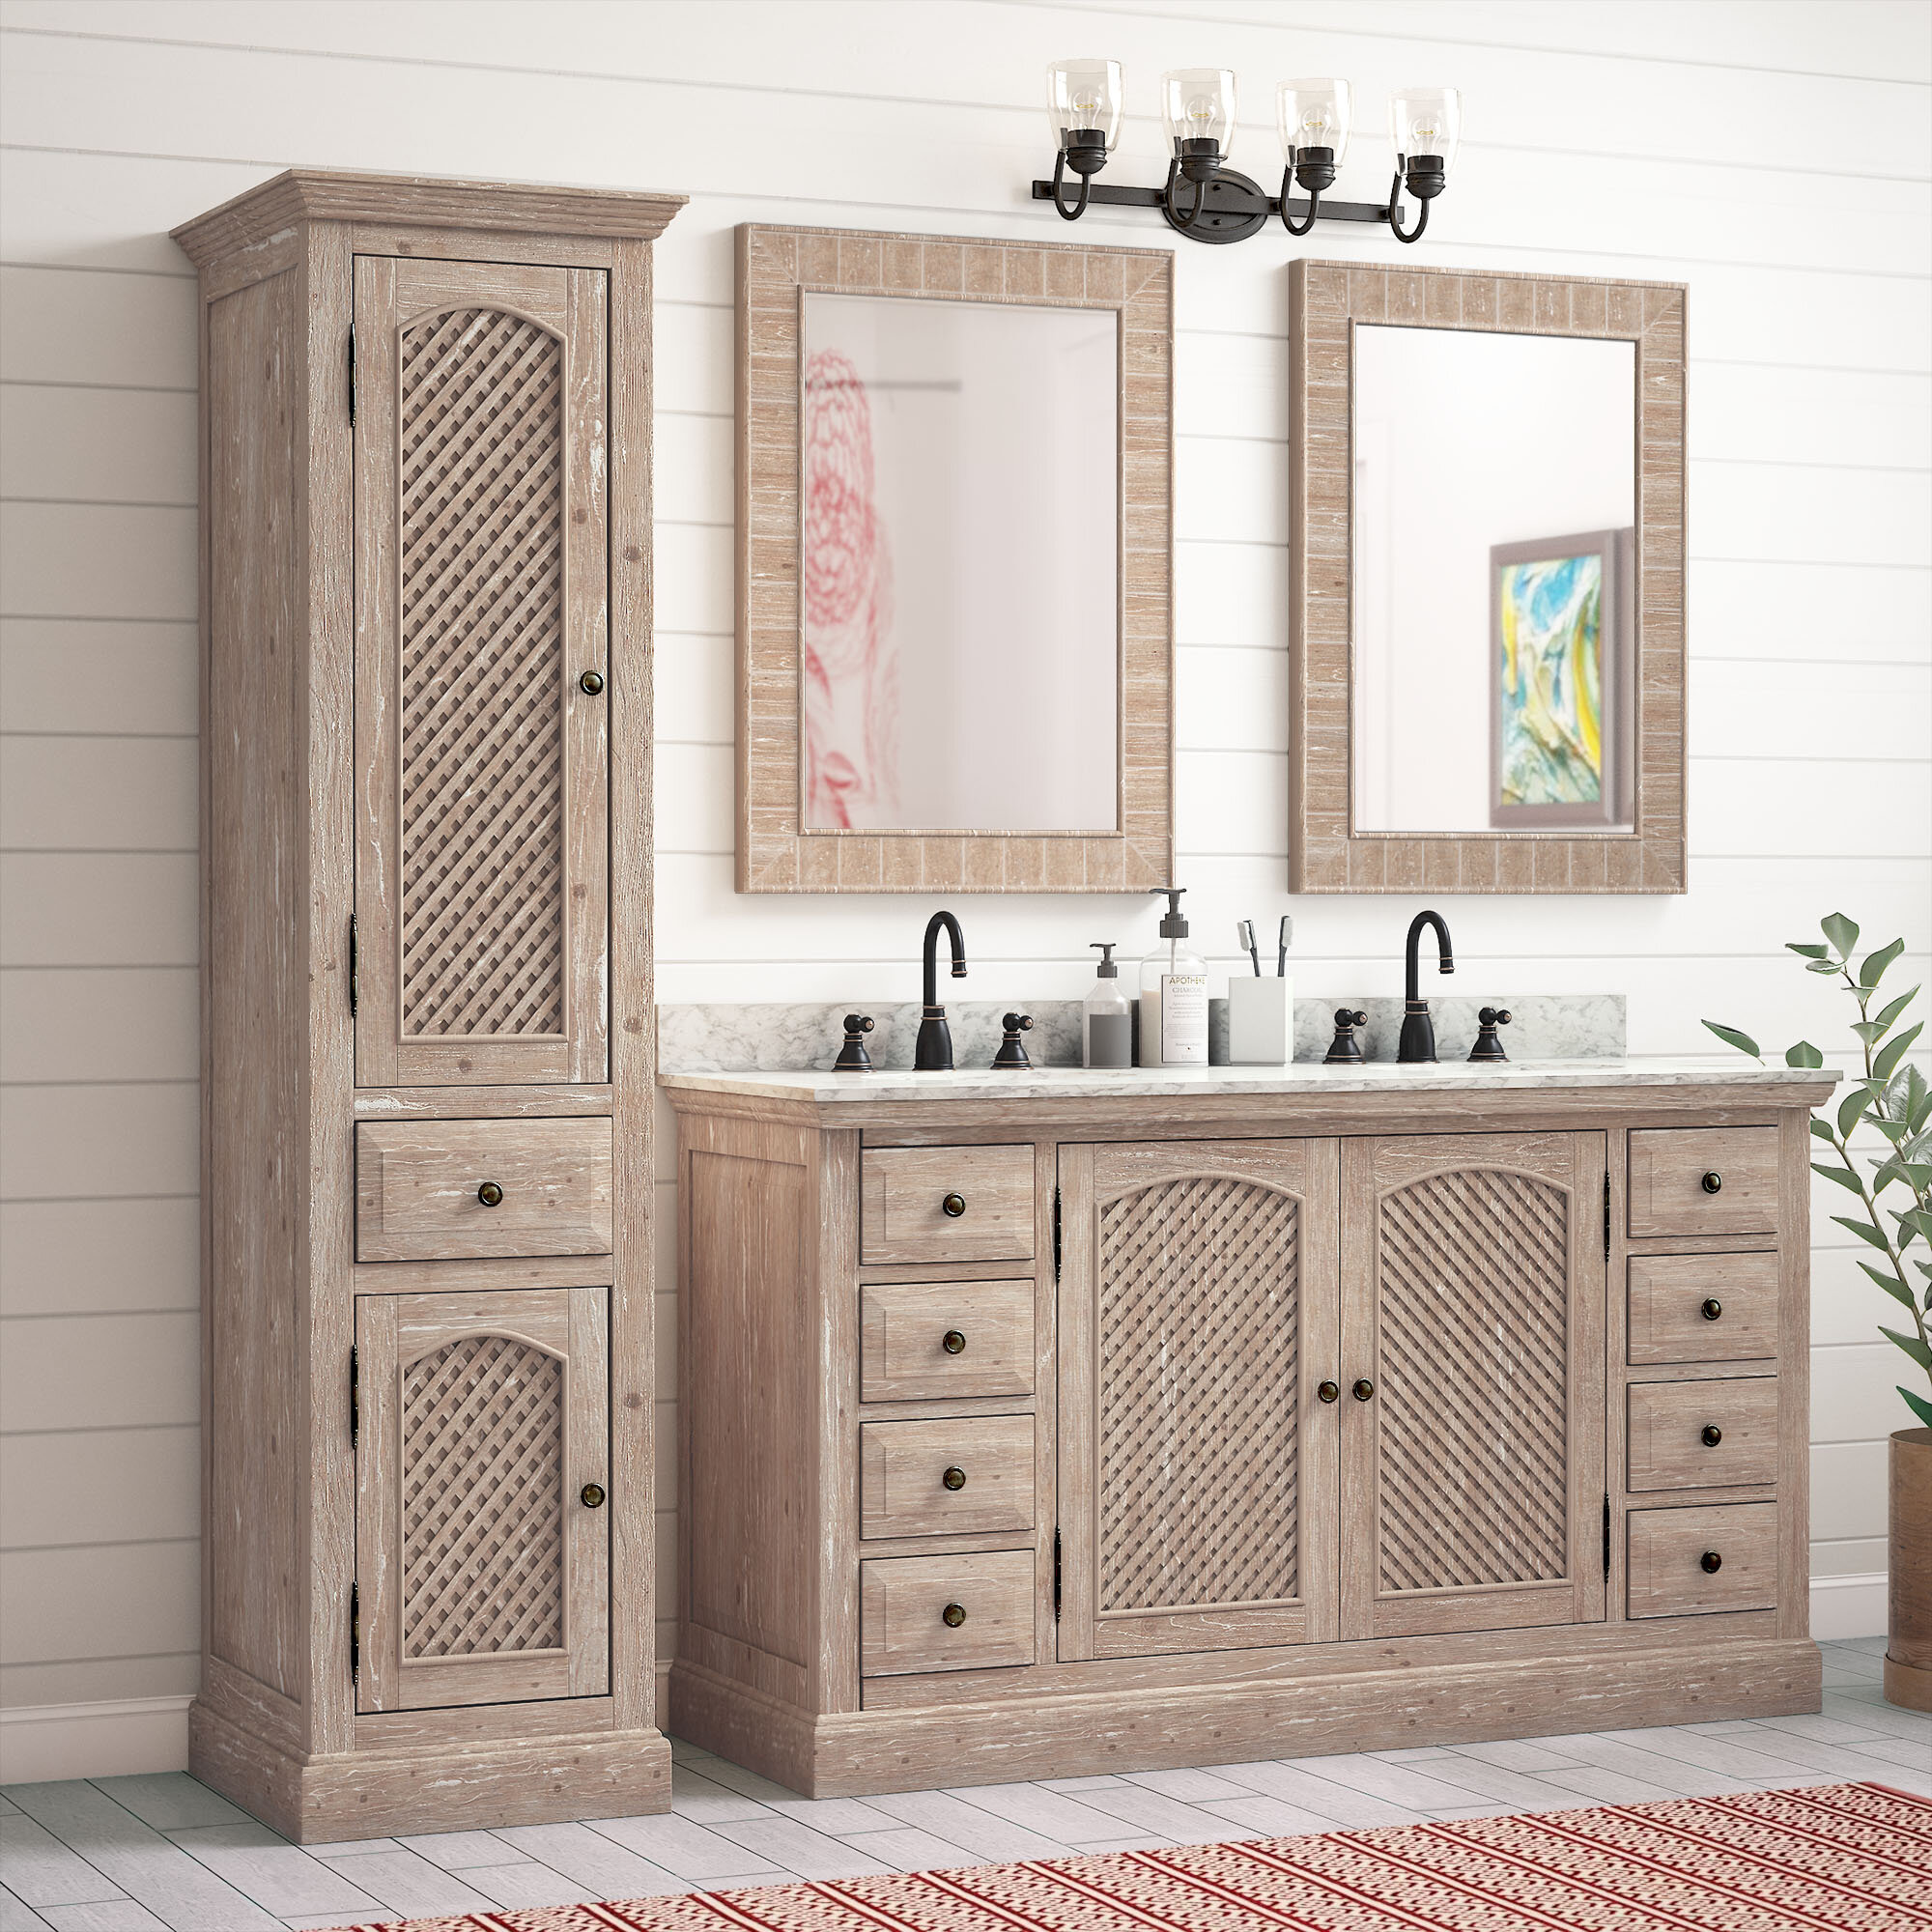 bathroom vanity with linen tower interior design ideas for any room rh im inynmj kk kxcxki egbsyy vimtag store